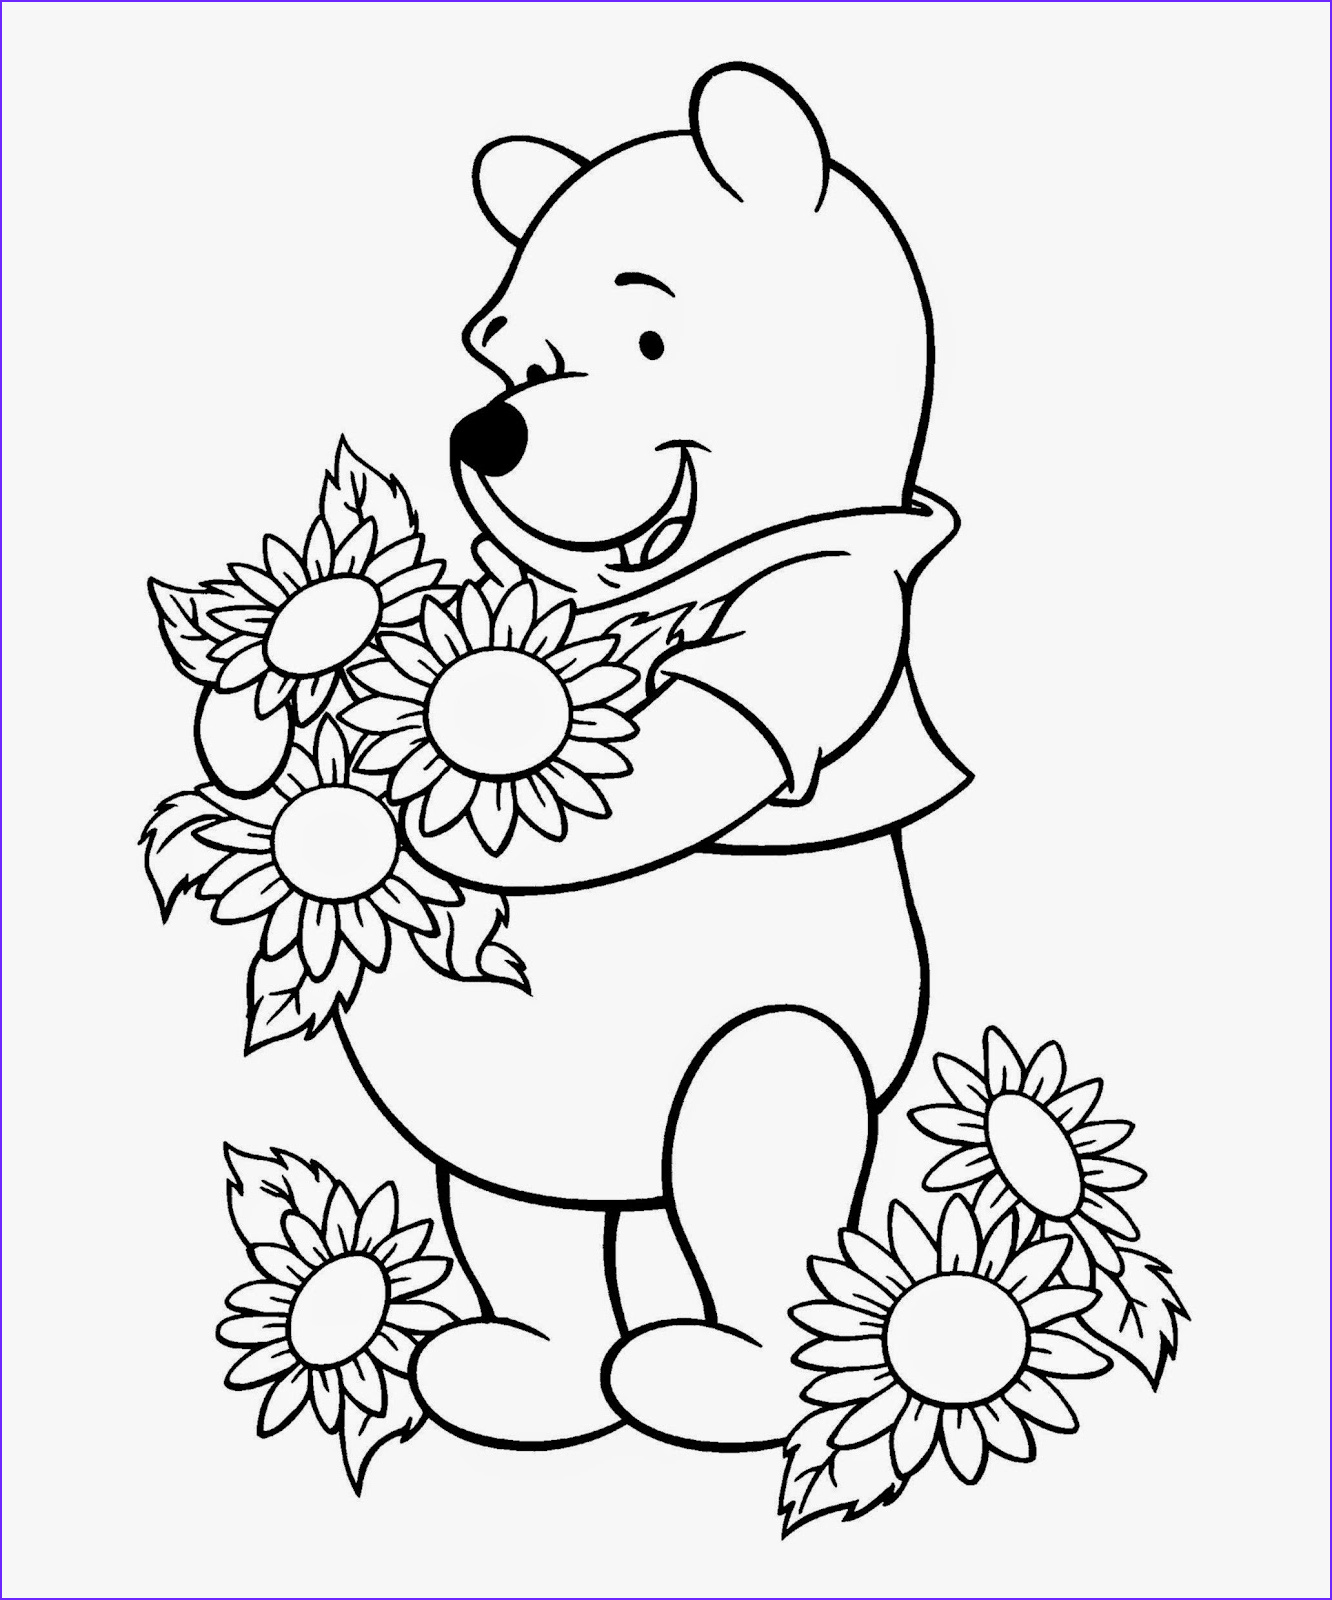 Character Coloring Page Beautiful Collection Winnie the Pooh Coloring Sheets